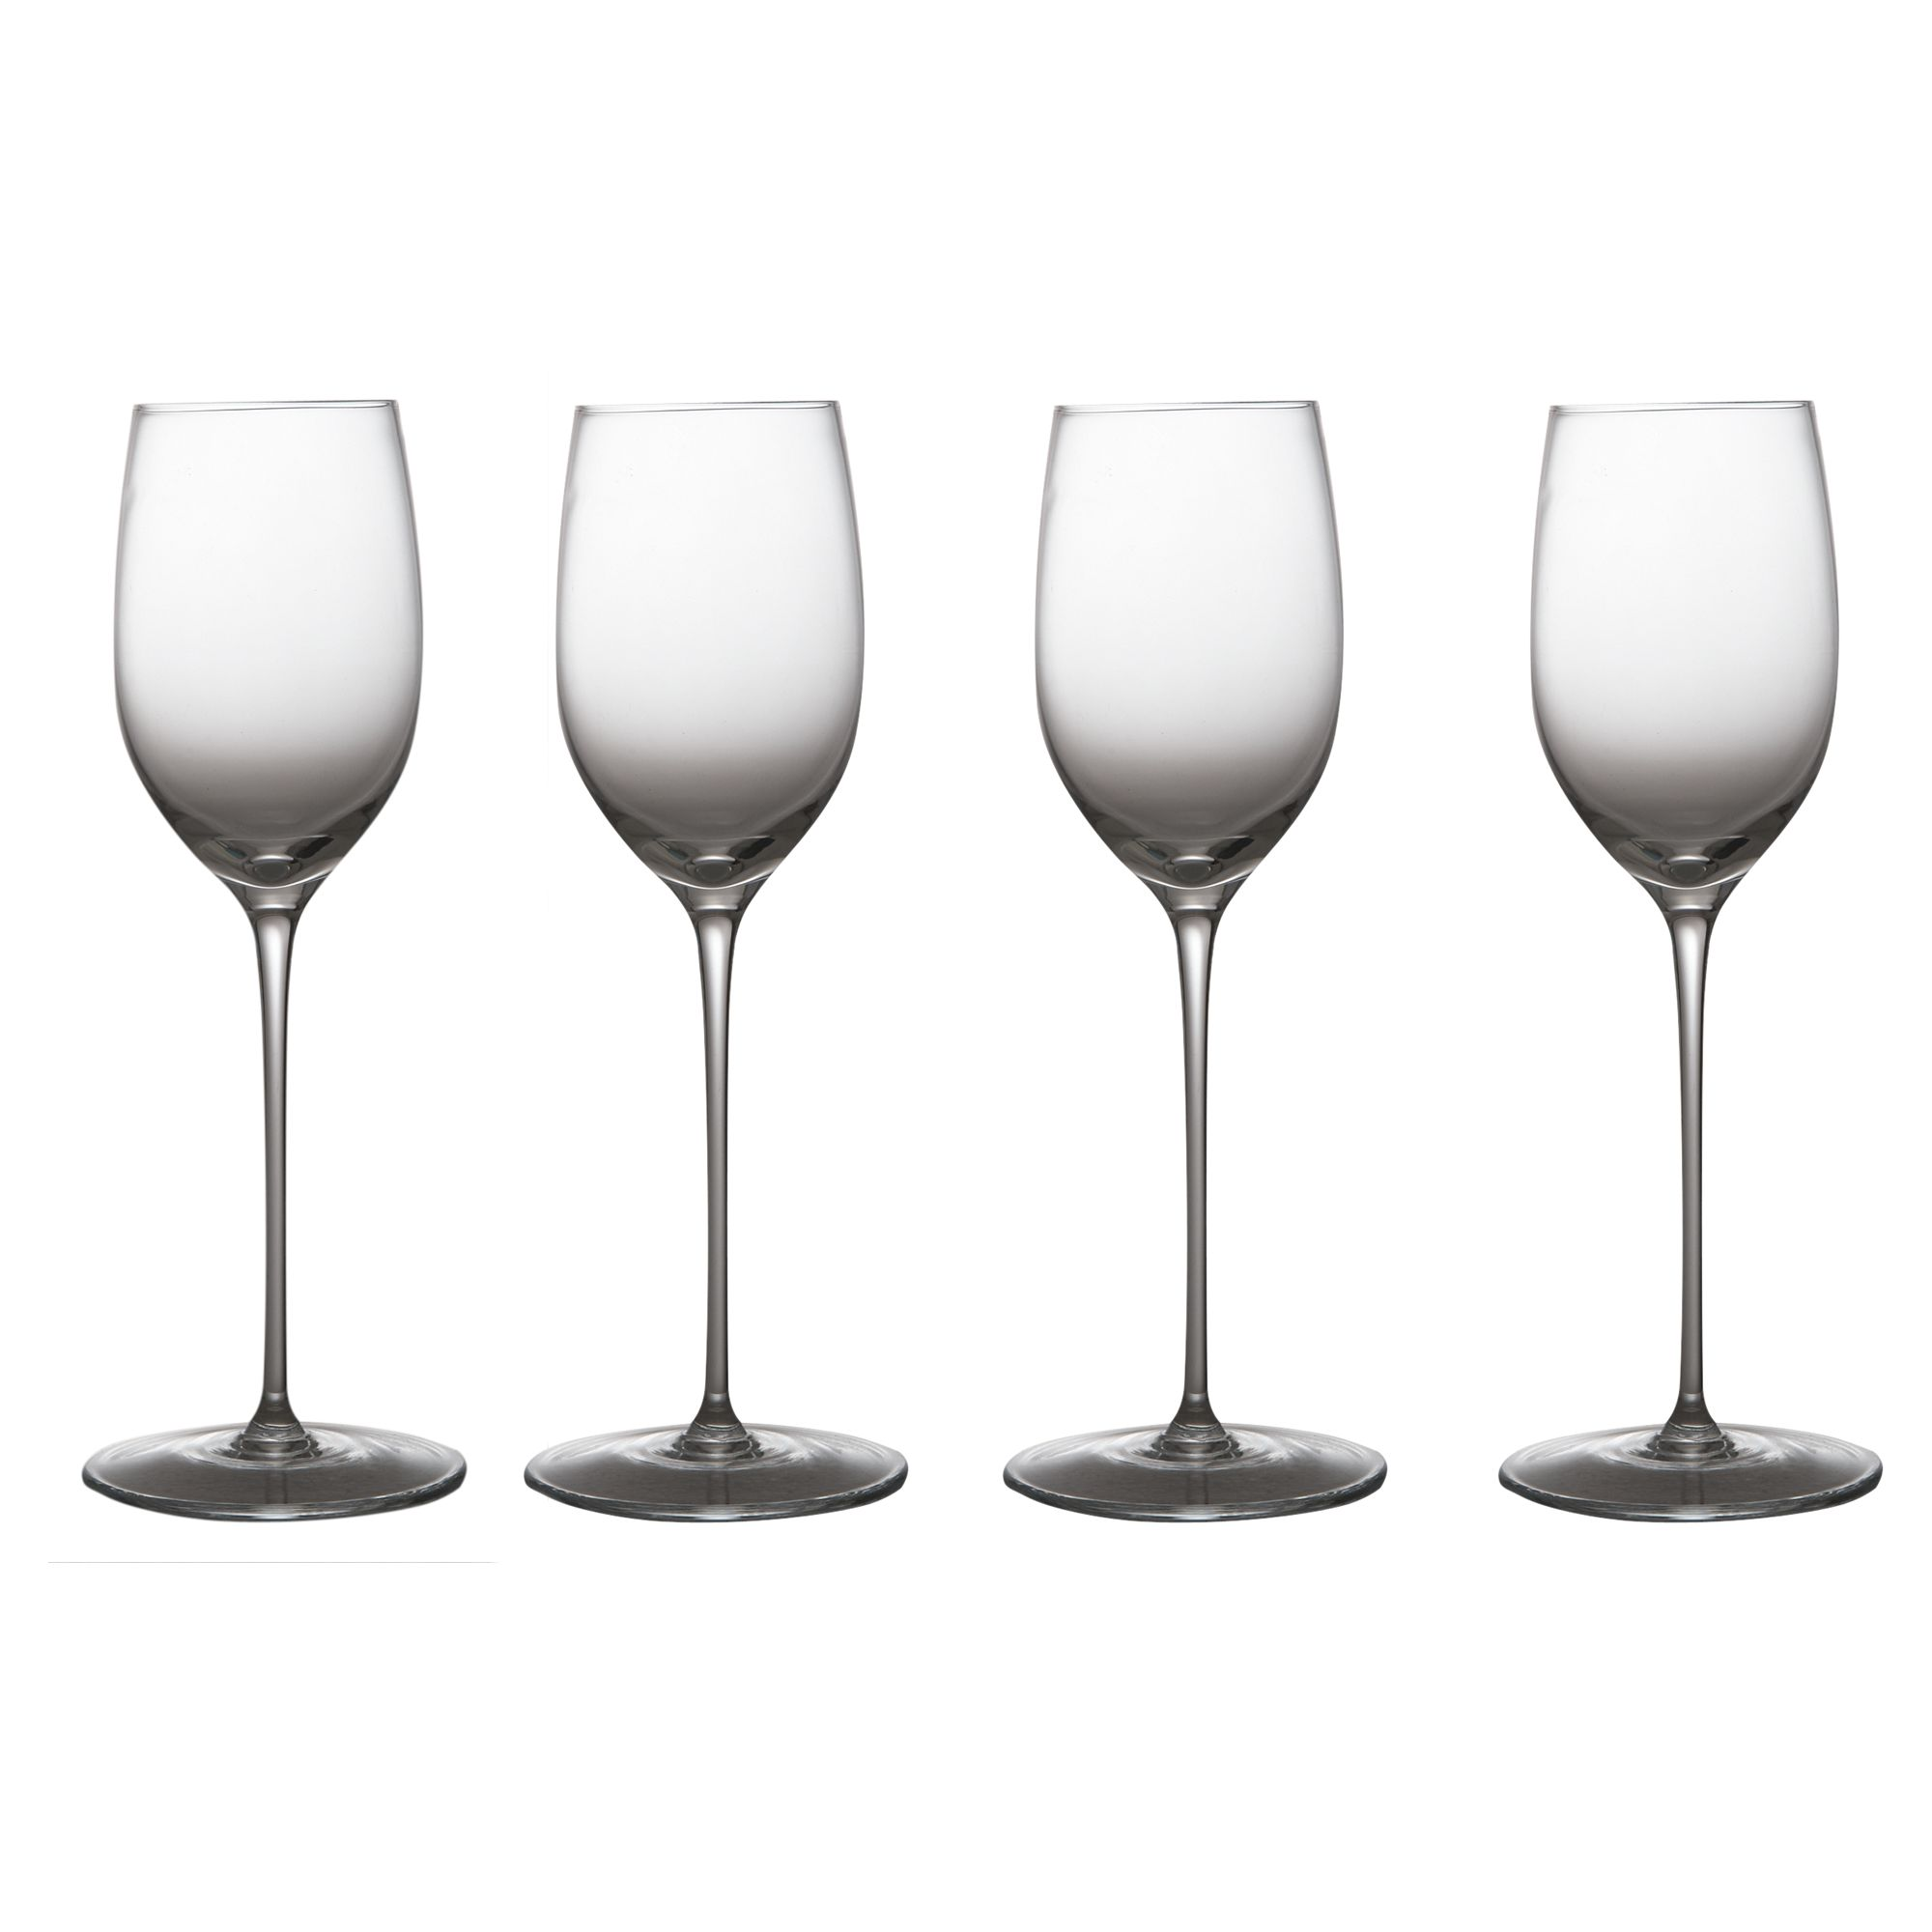 Bar collection sherry glasses, set of 4